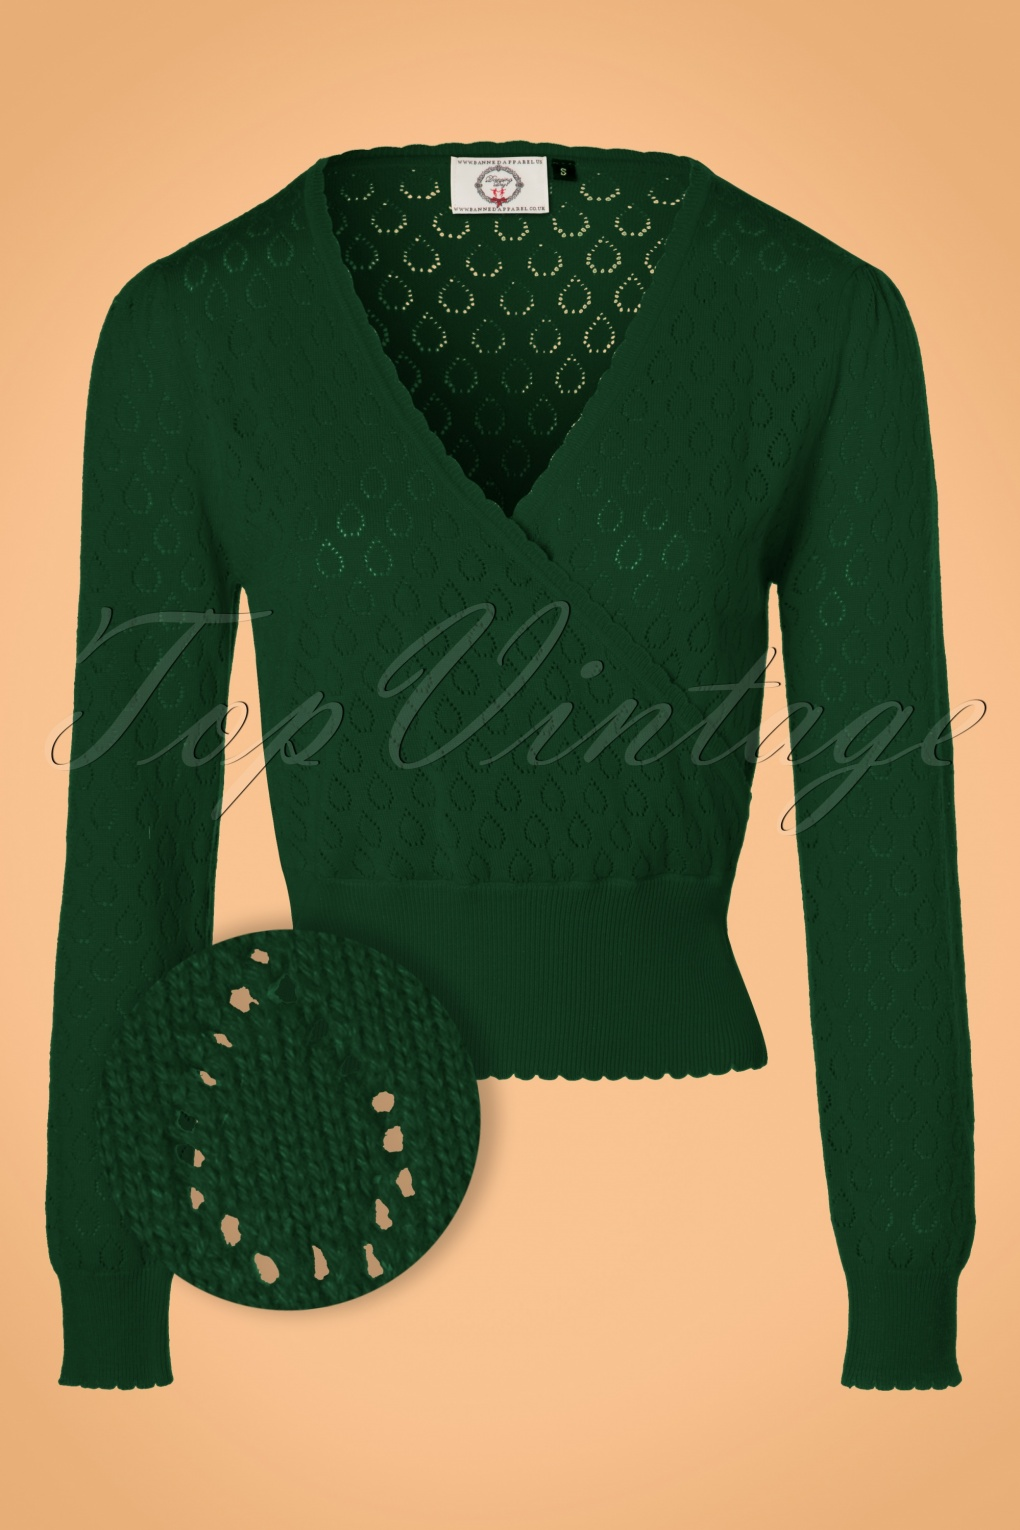 Vintage Christmas Dress | Party Dresses | Night Out Outfits 50s Instinct Wrap Top in Forest Green £33.04 AT vintagedancer.com